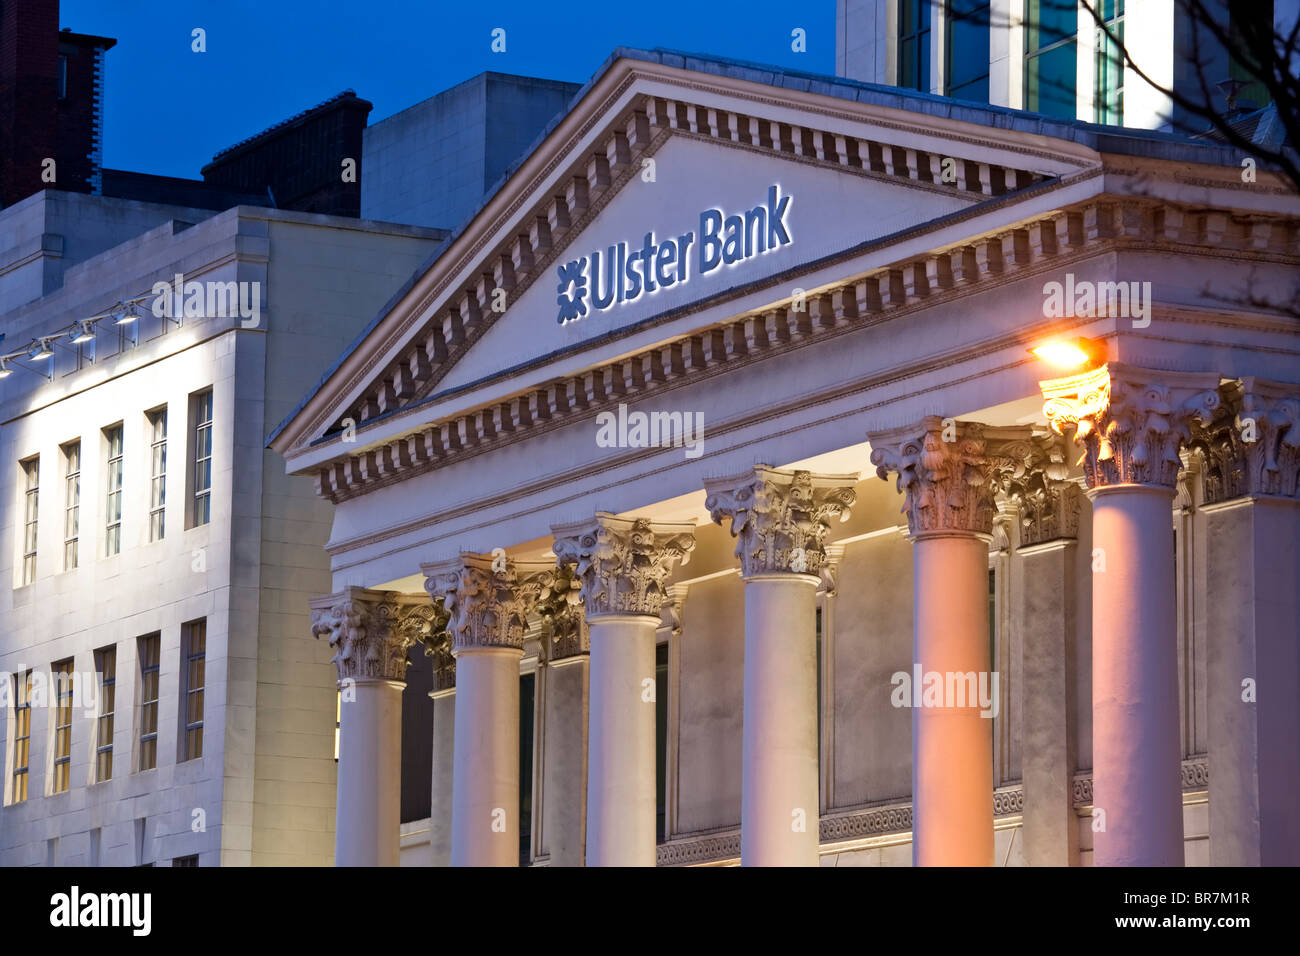 The classically styled headquarters of the Ulster Bank on Donegall Square, Belfast, Northern Ireland - Stock Image